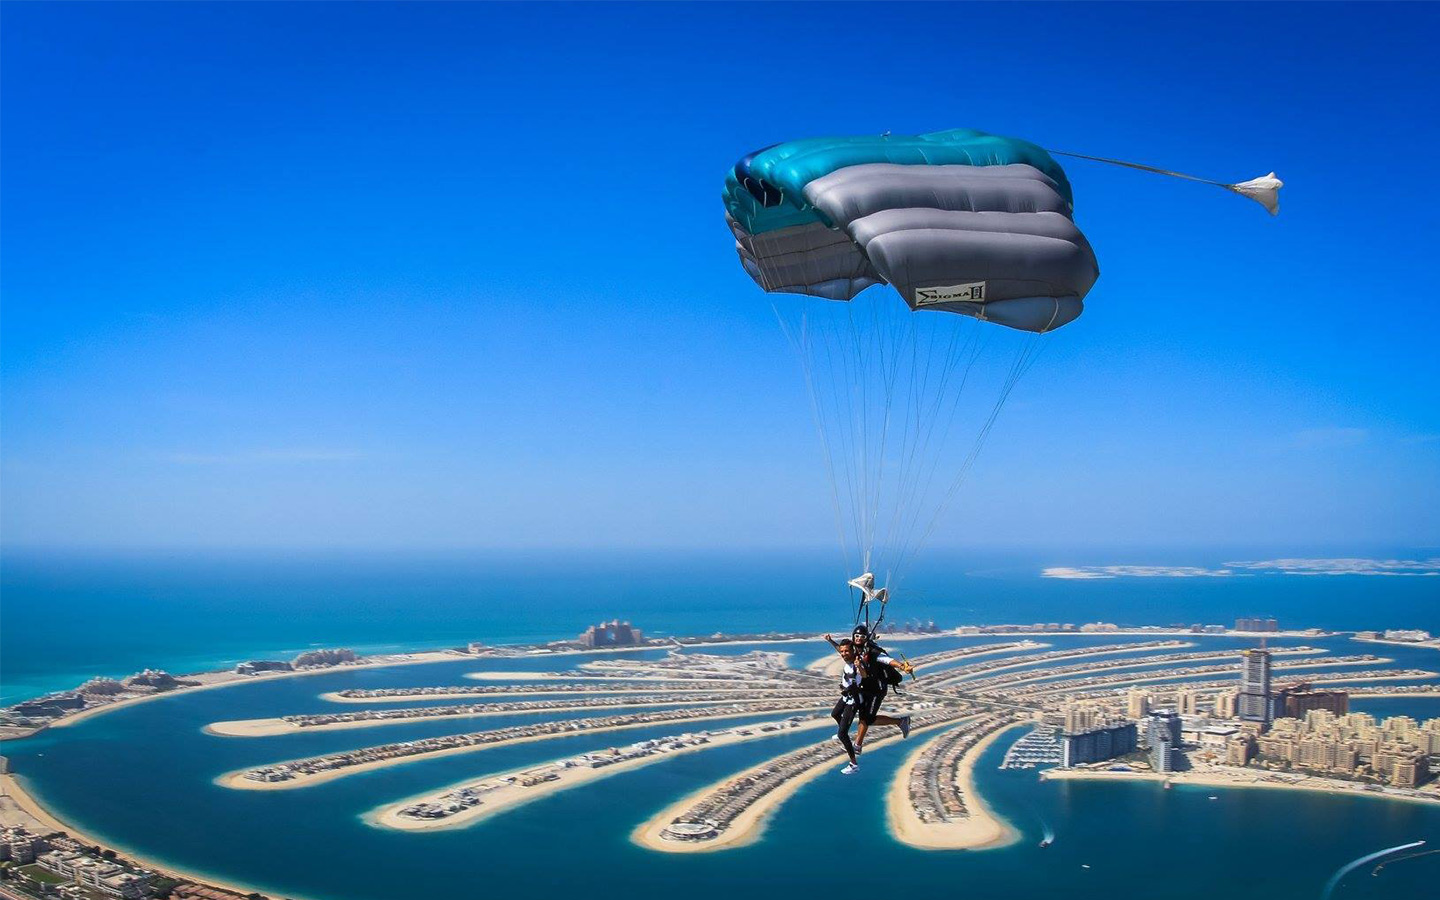 Skydive Dubai Experience: Registration, Prices, Timings & More